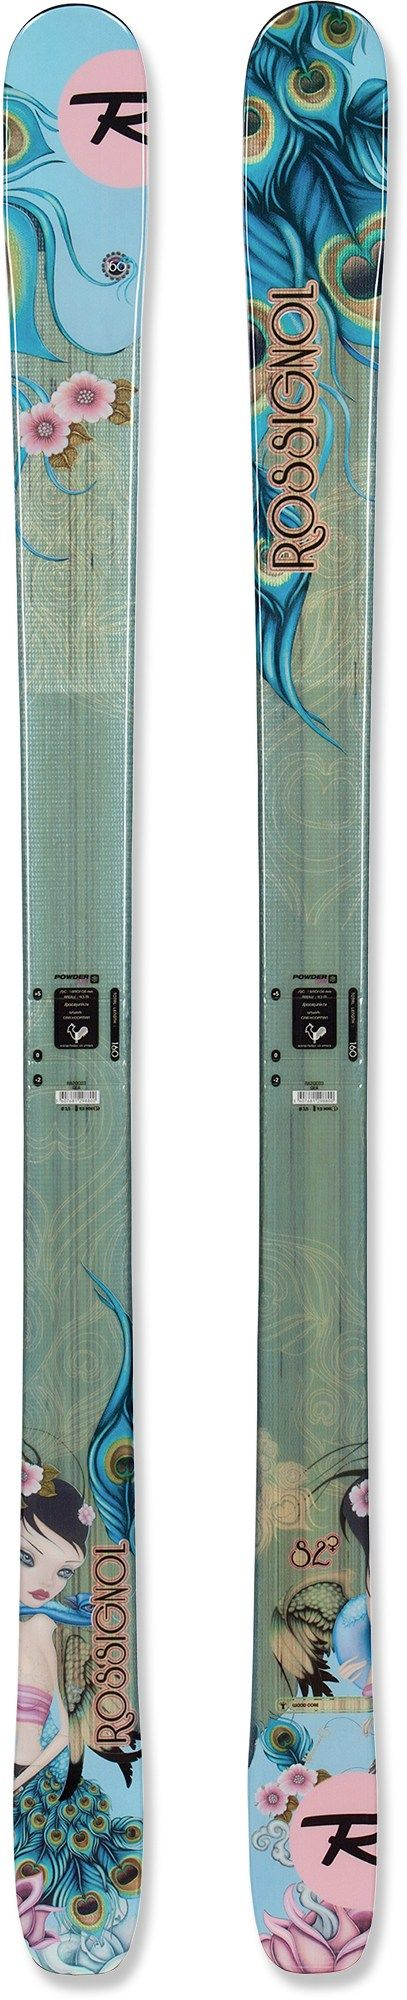 The rossignol sassy 7 women s skis float through powder plow through crud and cruise the